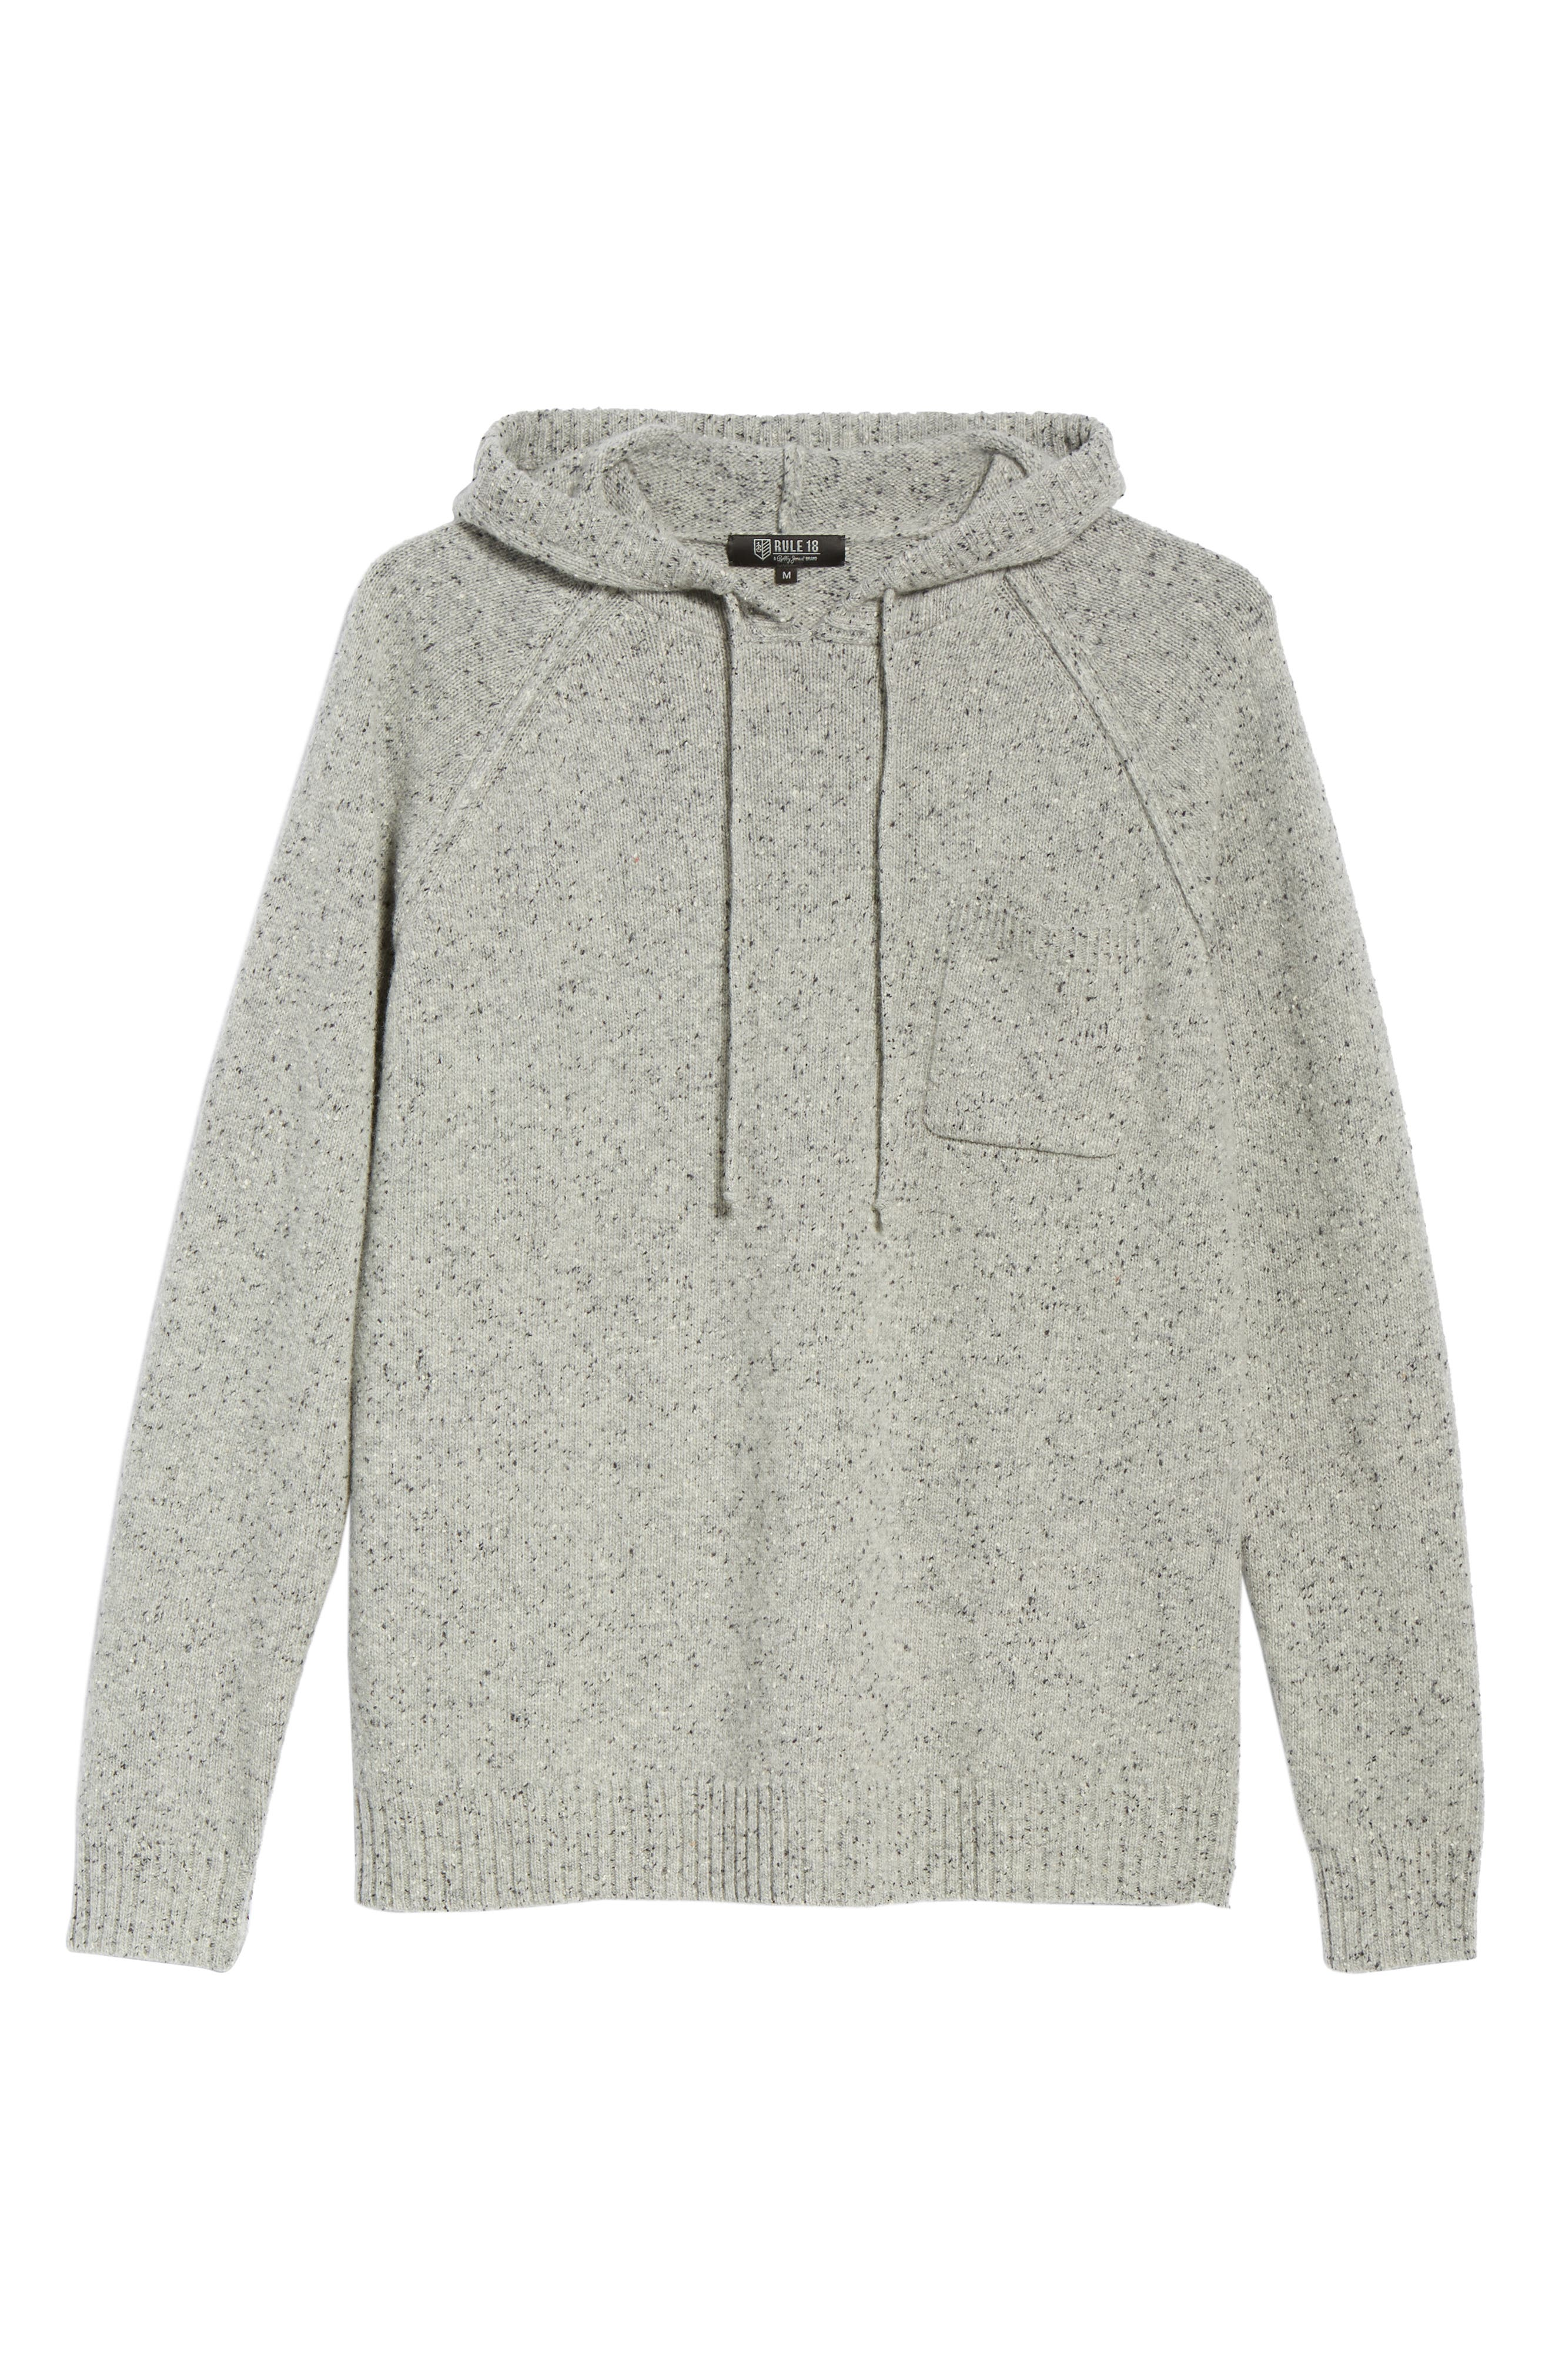 Rule 18 Donegal Regular Fit Hooded Sweater,                             Alternate thumbnail 6, color,                             GREY